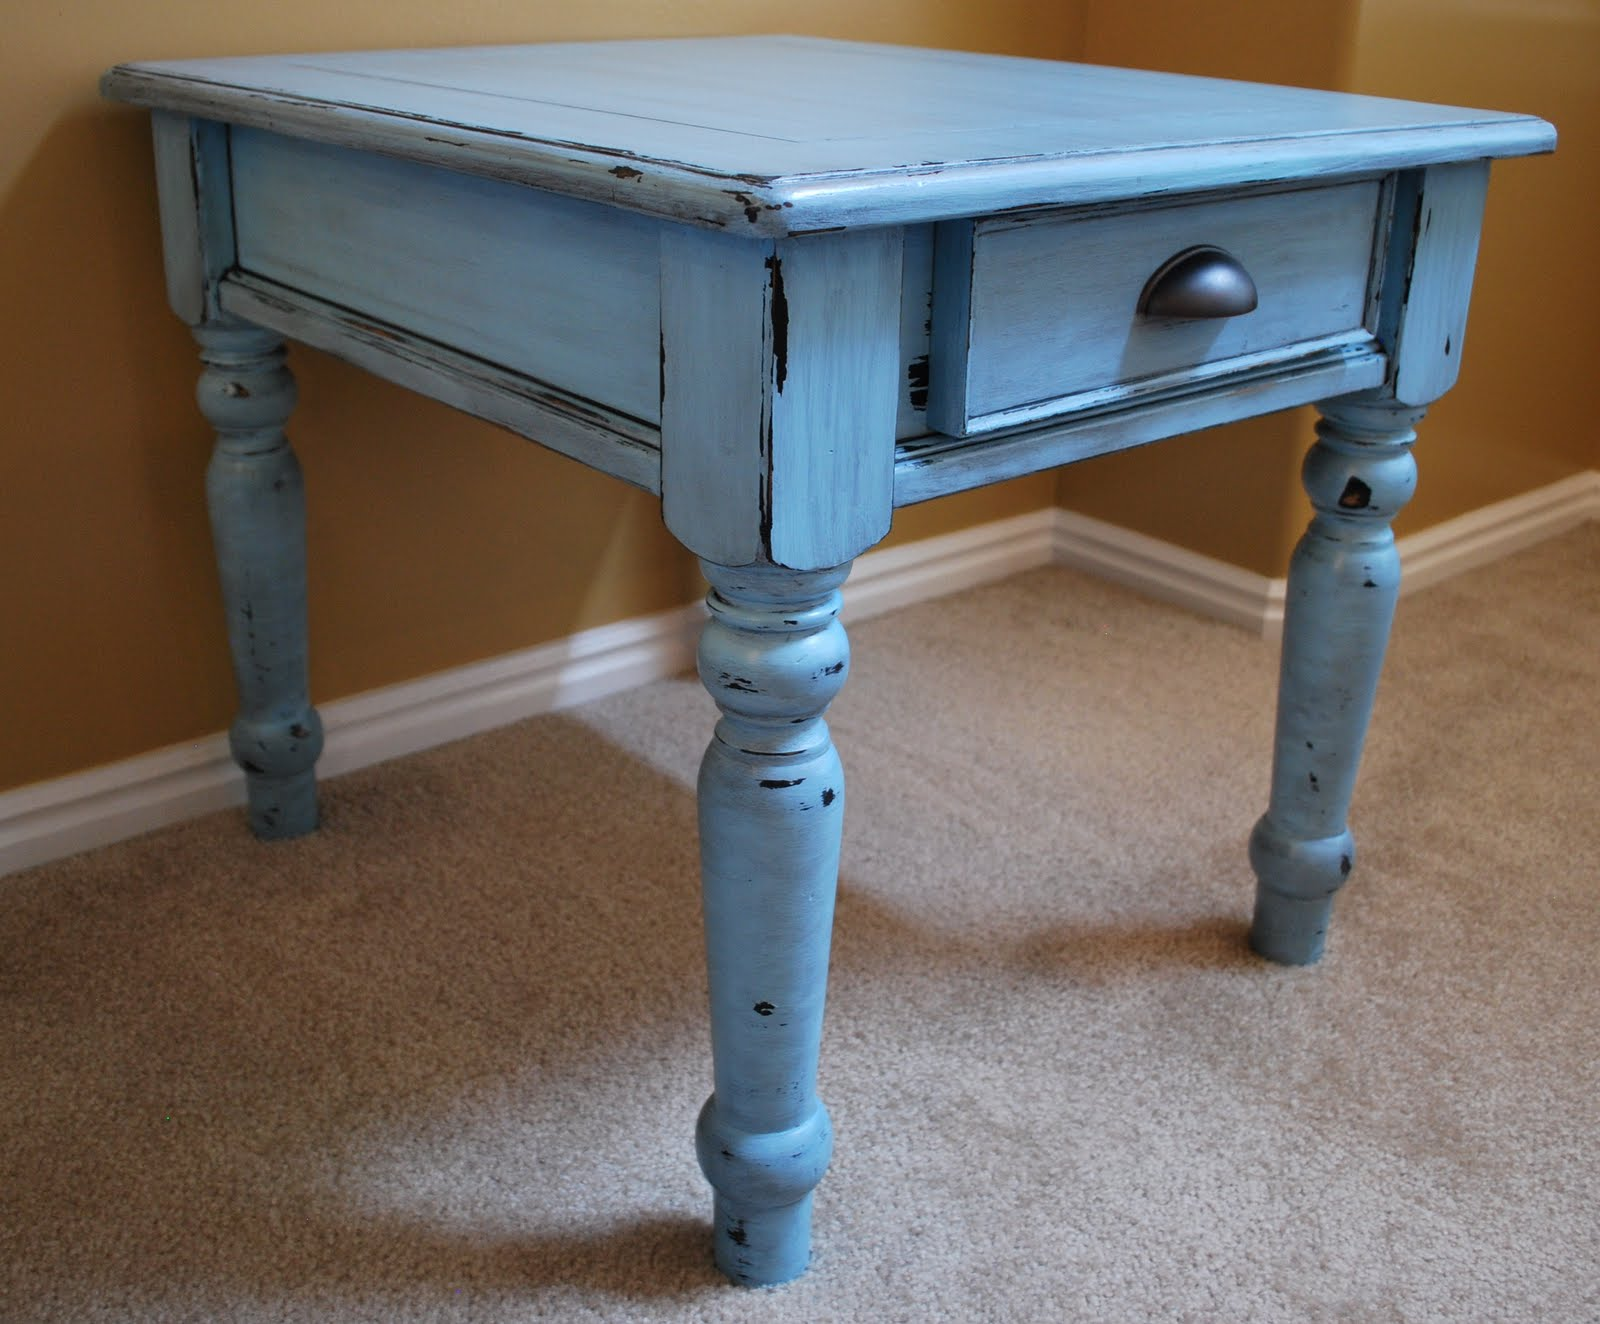 Distressed blue coffee table rascalartsnyc distressed blue coffee table rascalartsnyc geotapseo Gallery